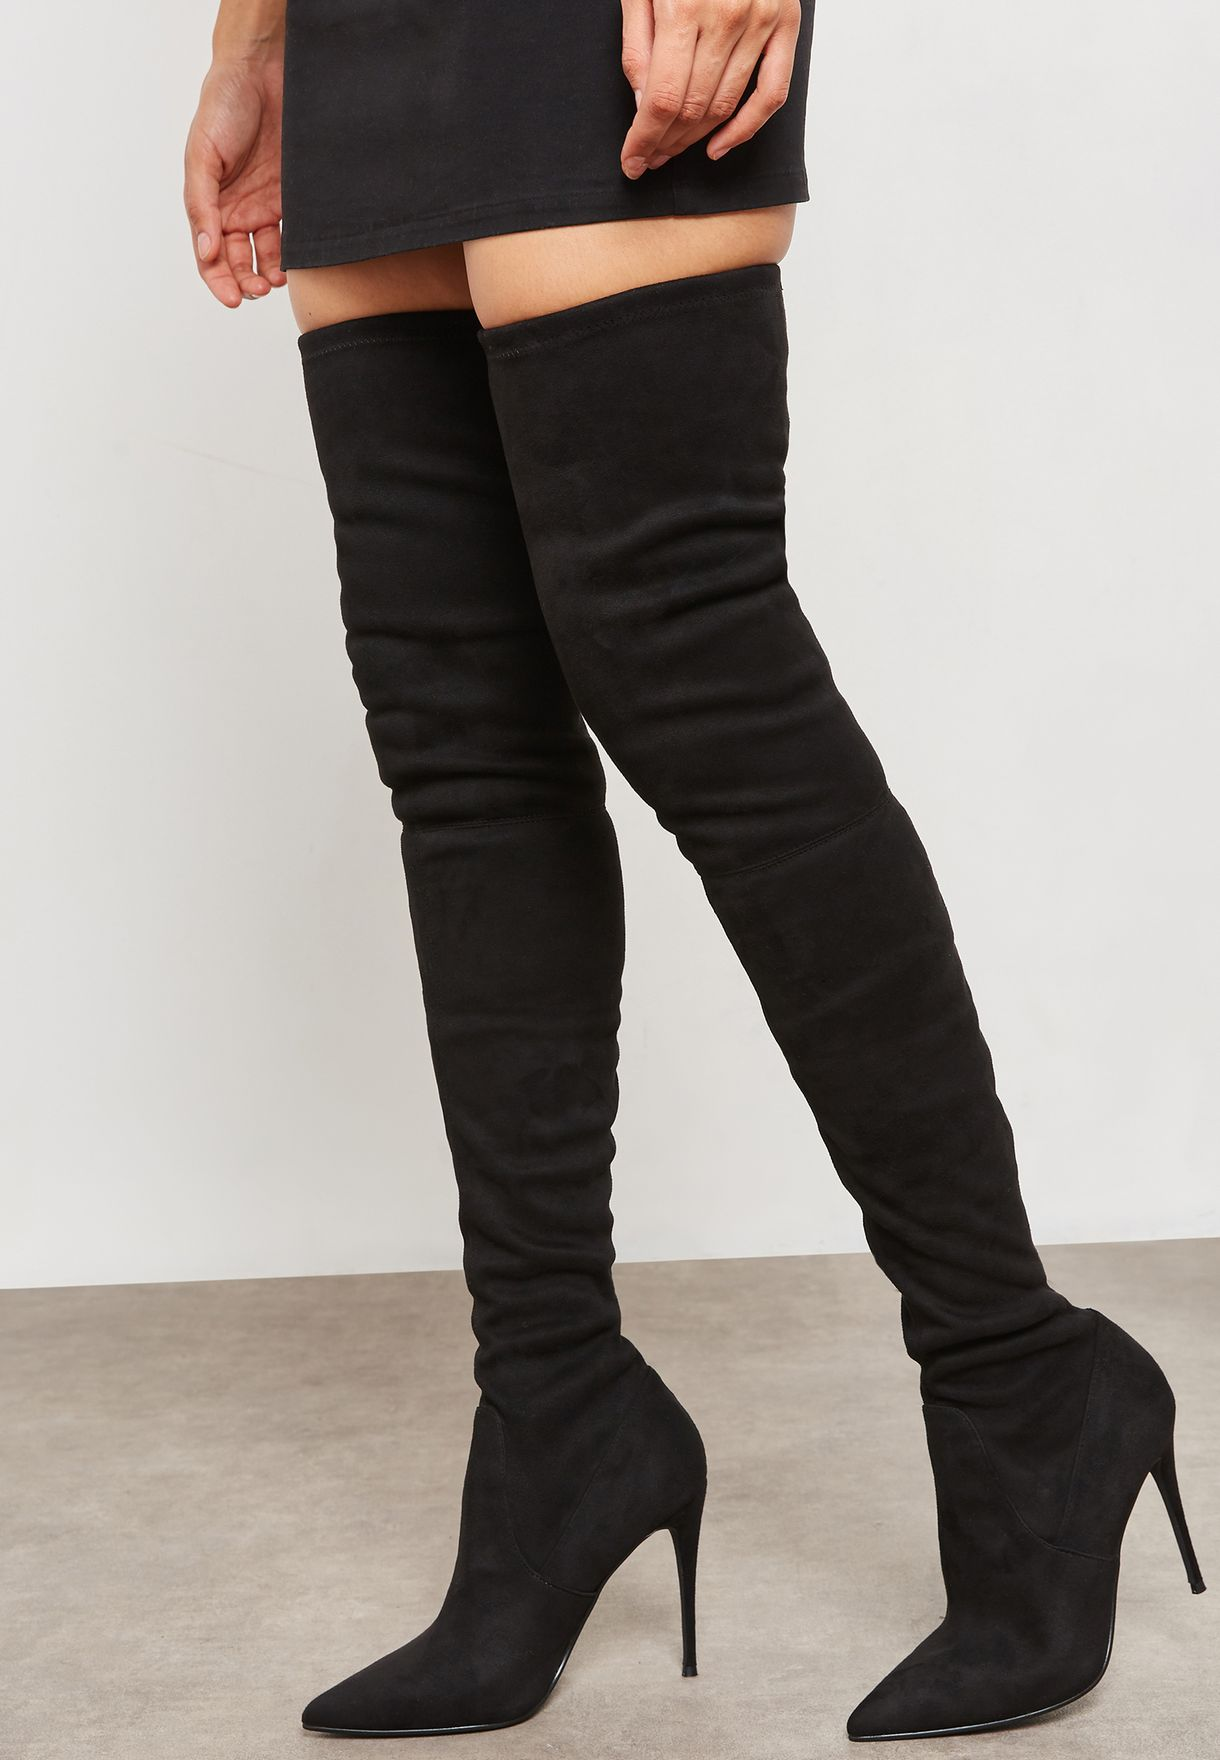 4e99c500a07 Shop Steve Madden black Dominique Knee Boot DOMINIQUE for Women in ...